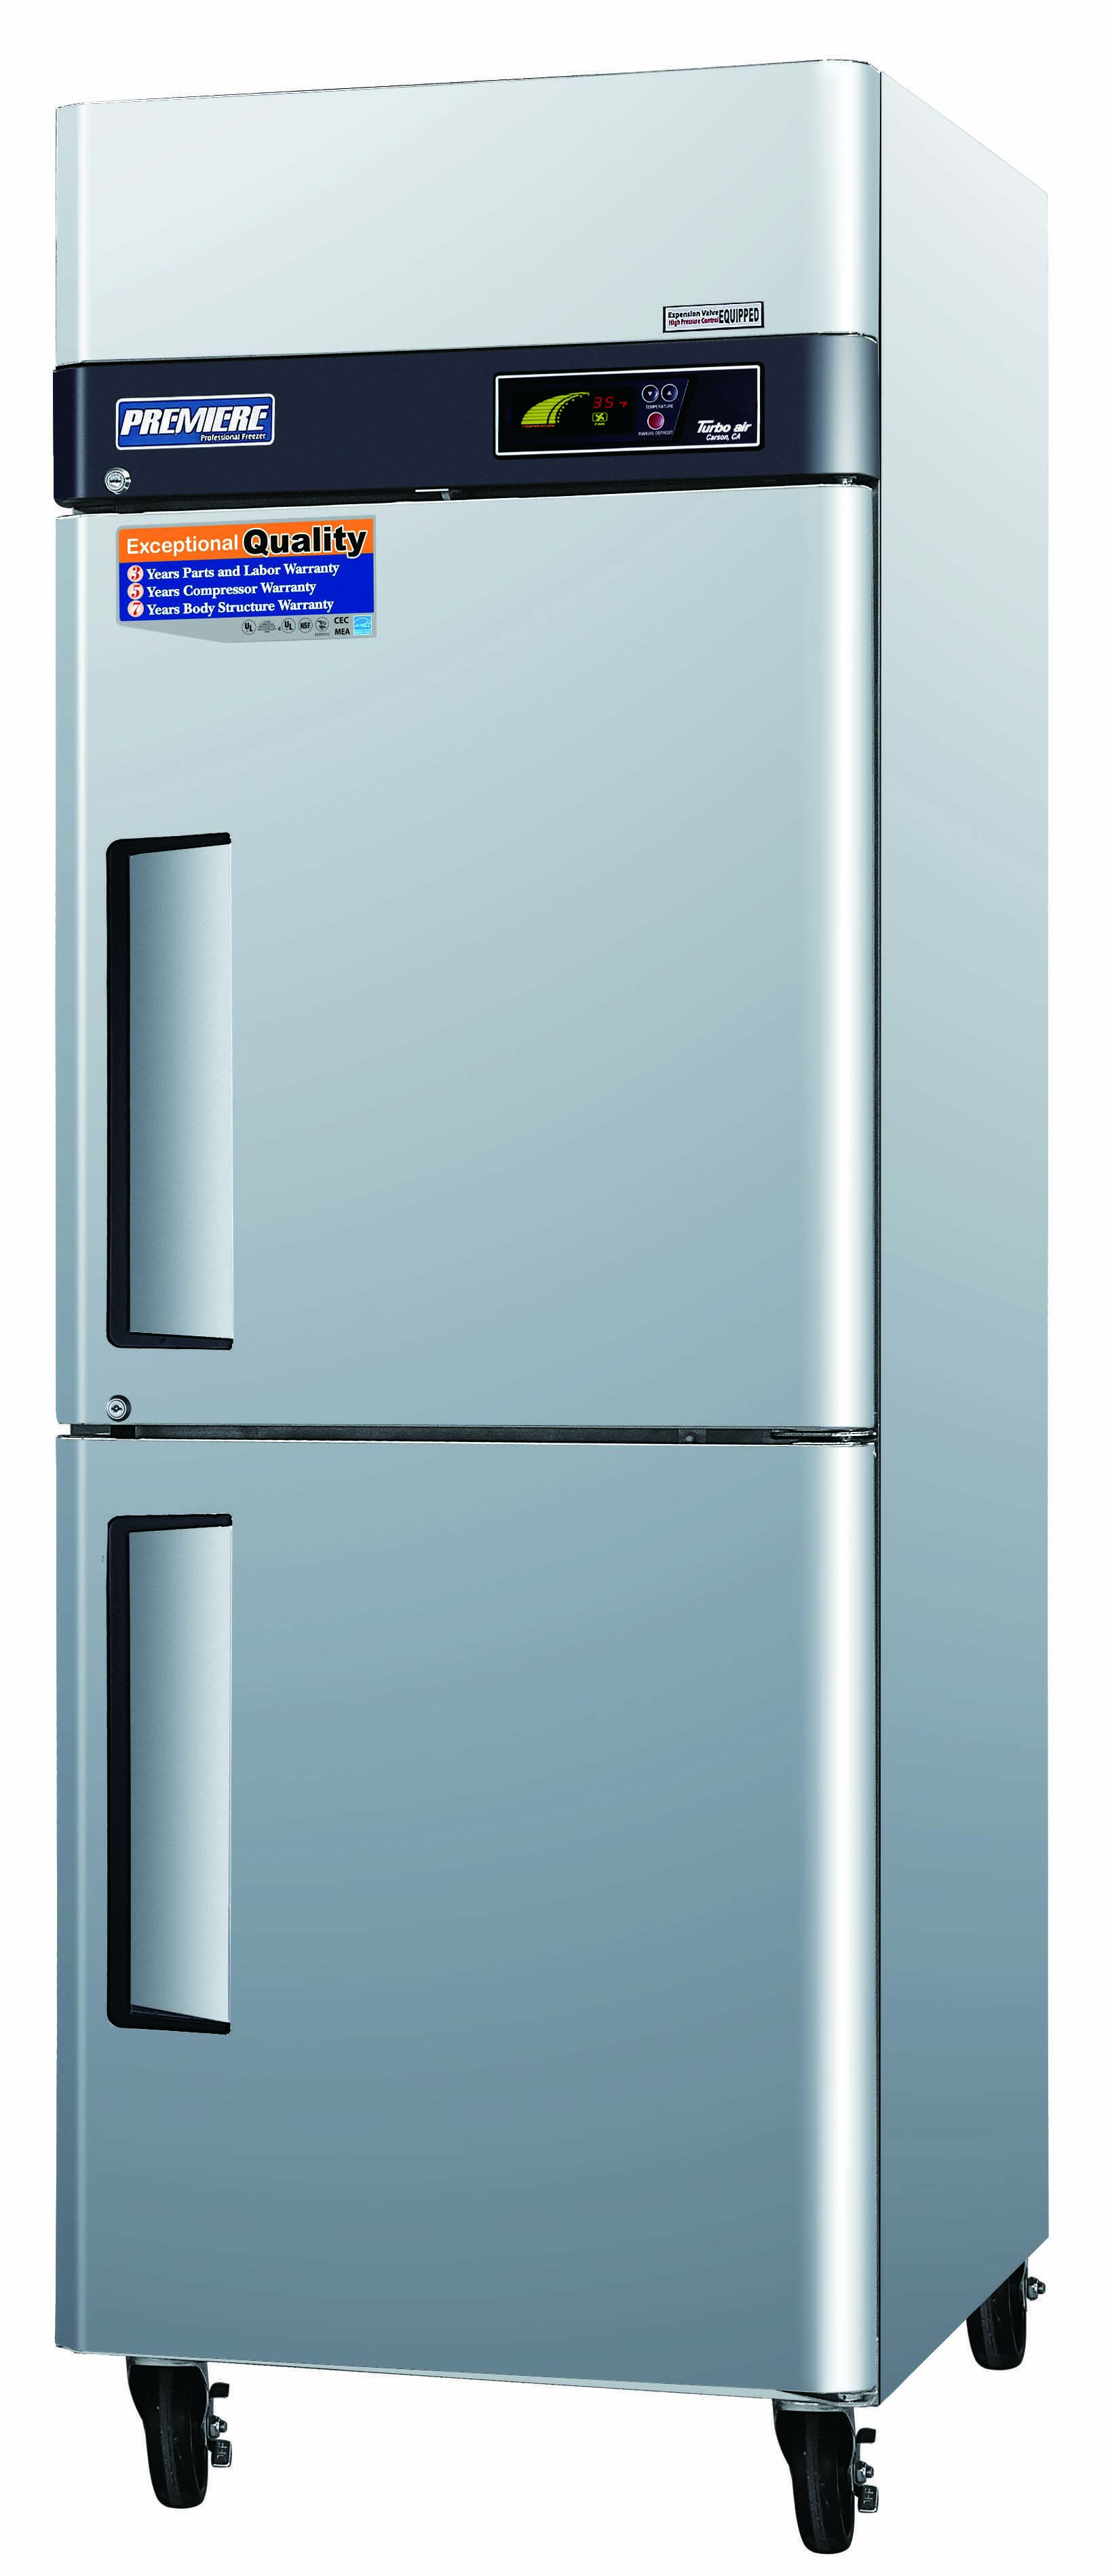 26 Cu. Ft ; 2 Doors Available for Freezer and